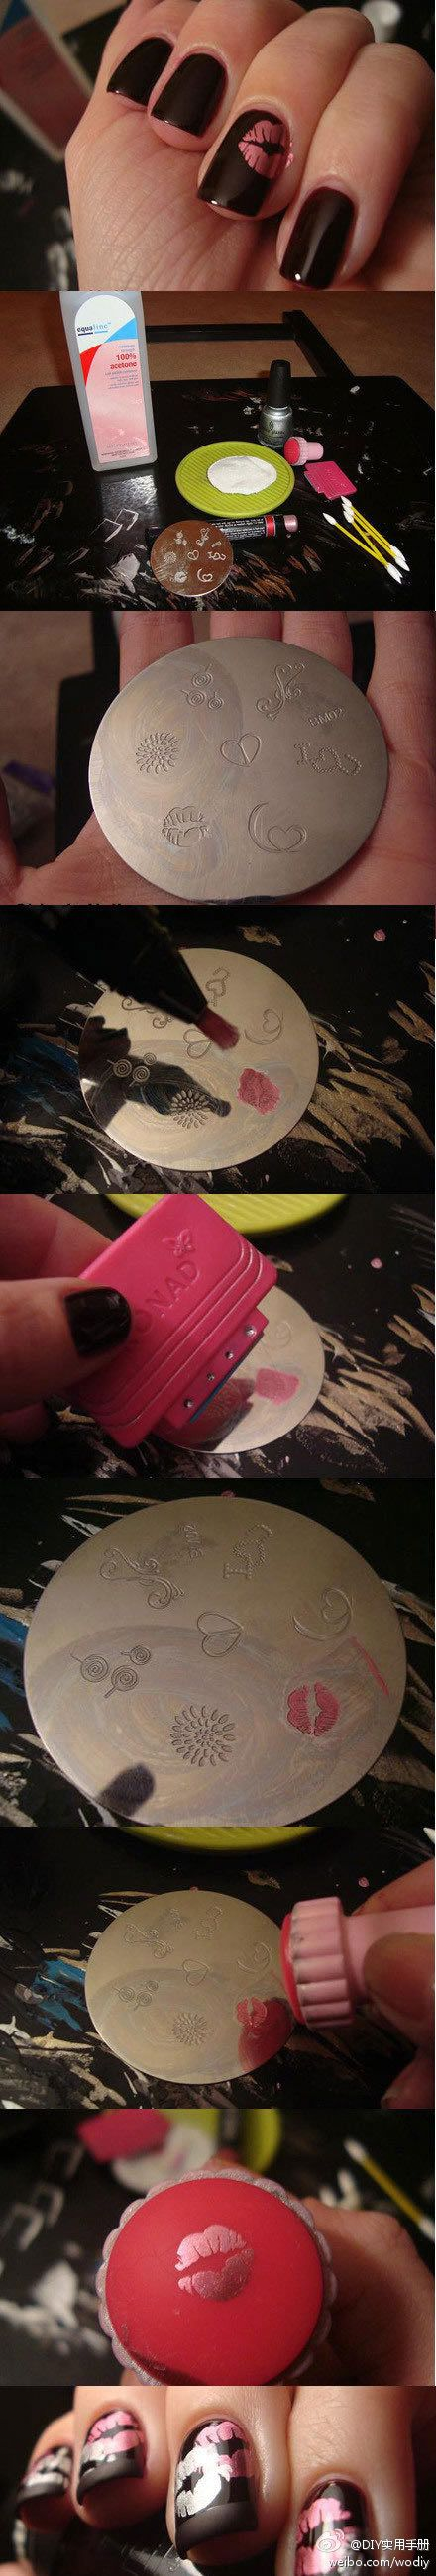 Nail DIY: black nails with pink stencil detail. #manicure #design